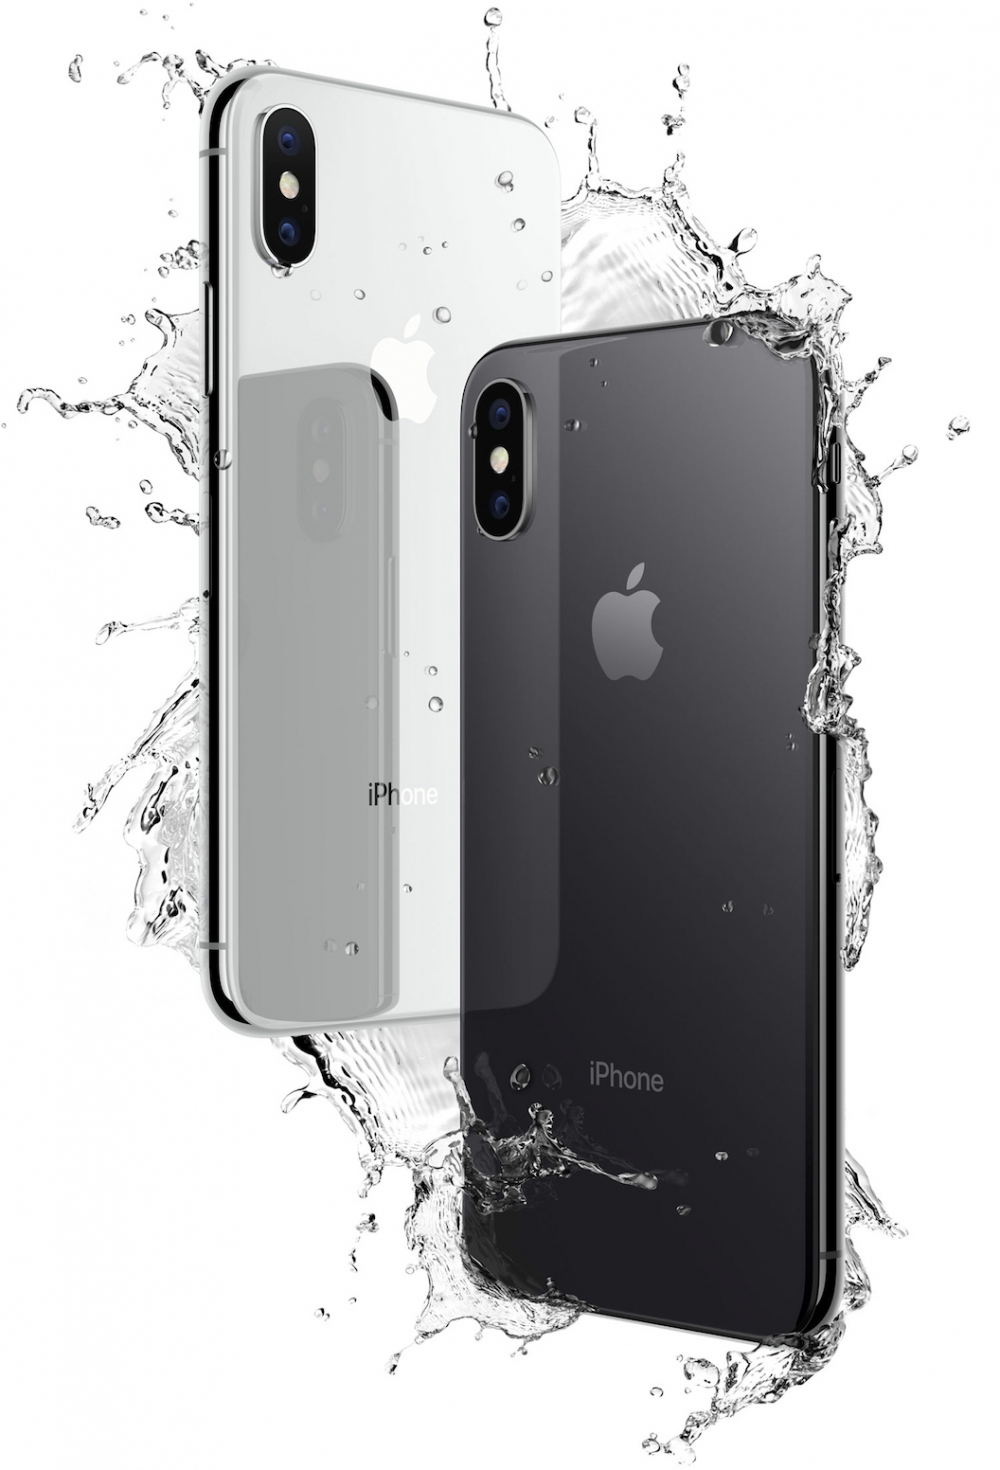 Apple iPhone X - 256GB Space Gray - 4